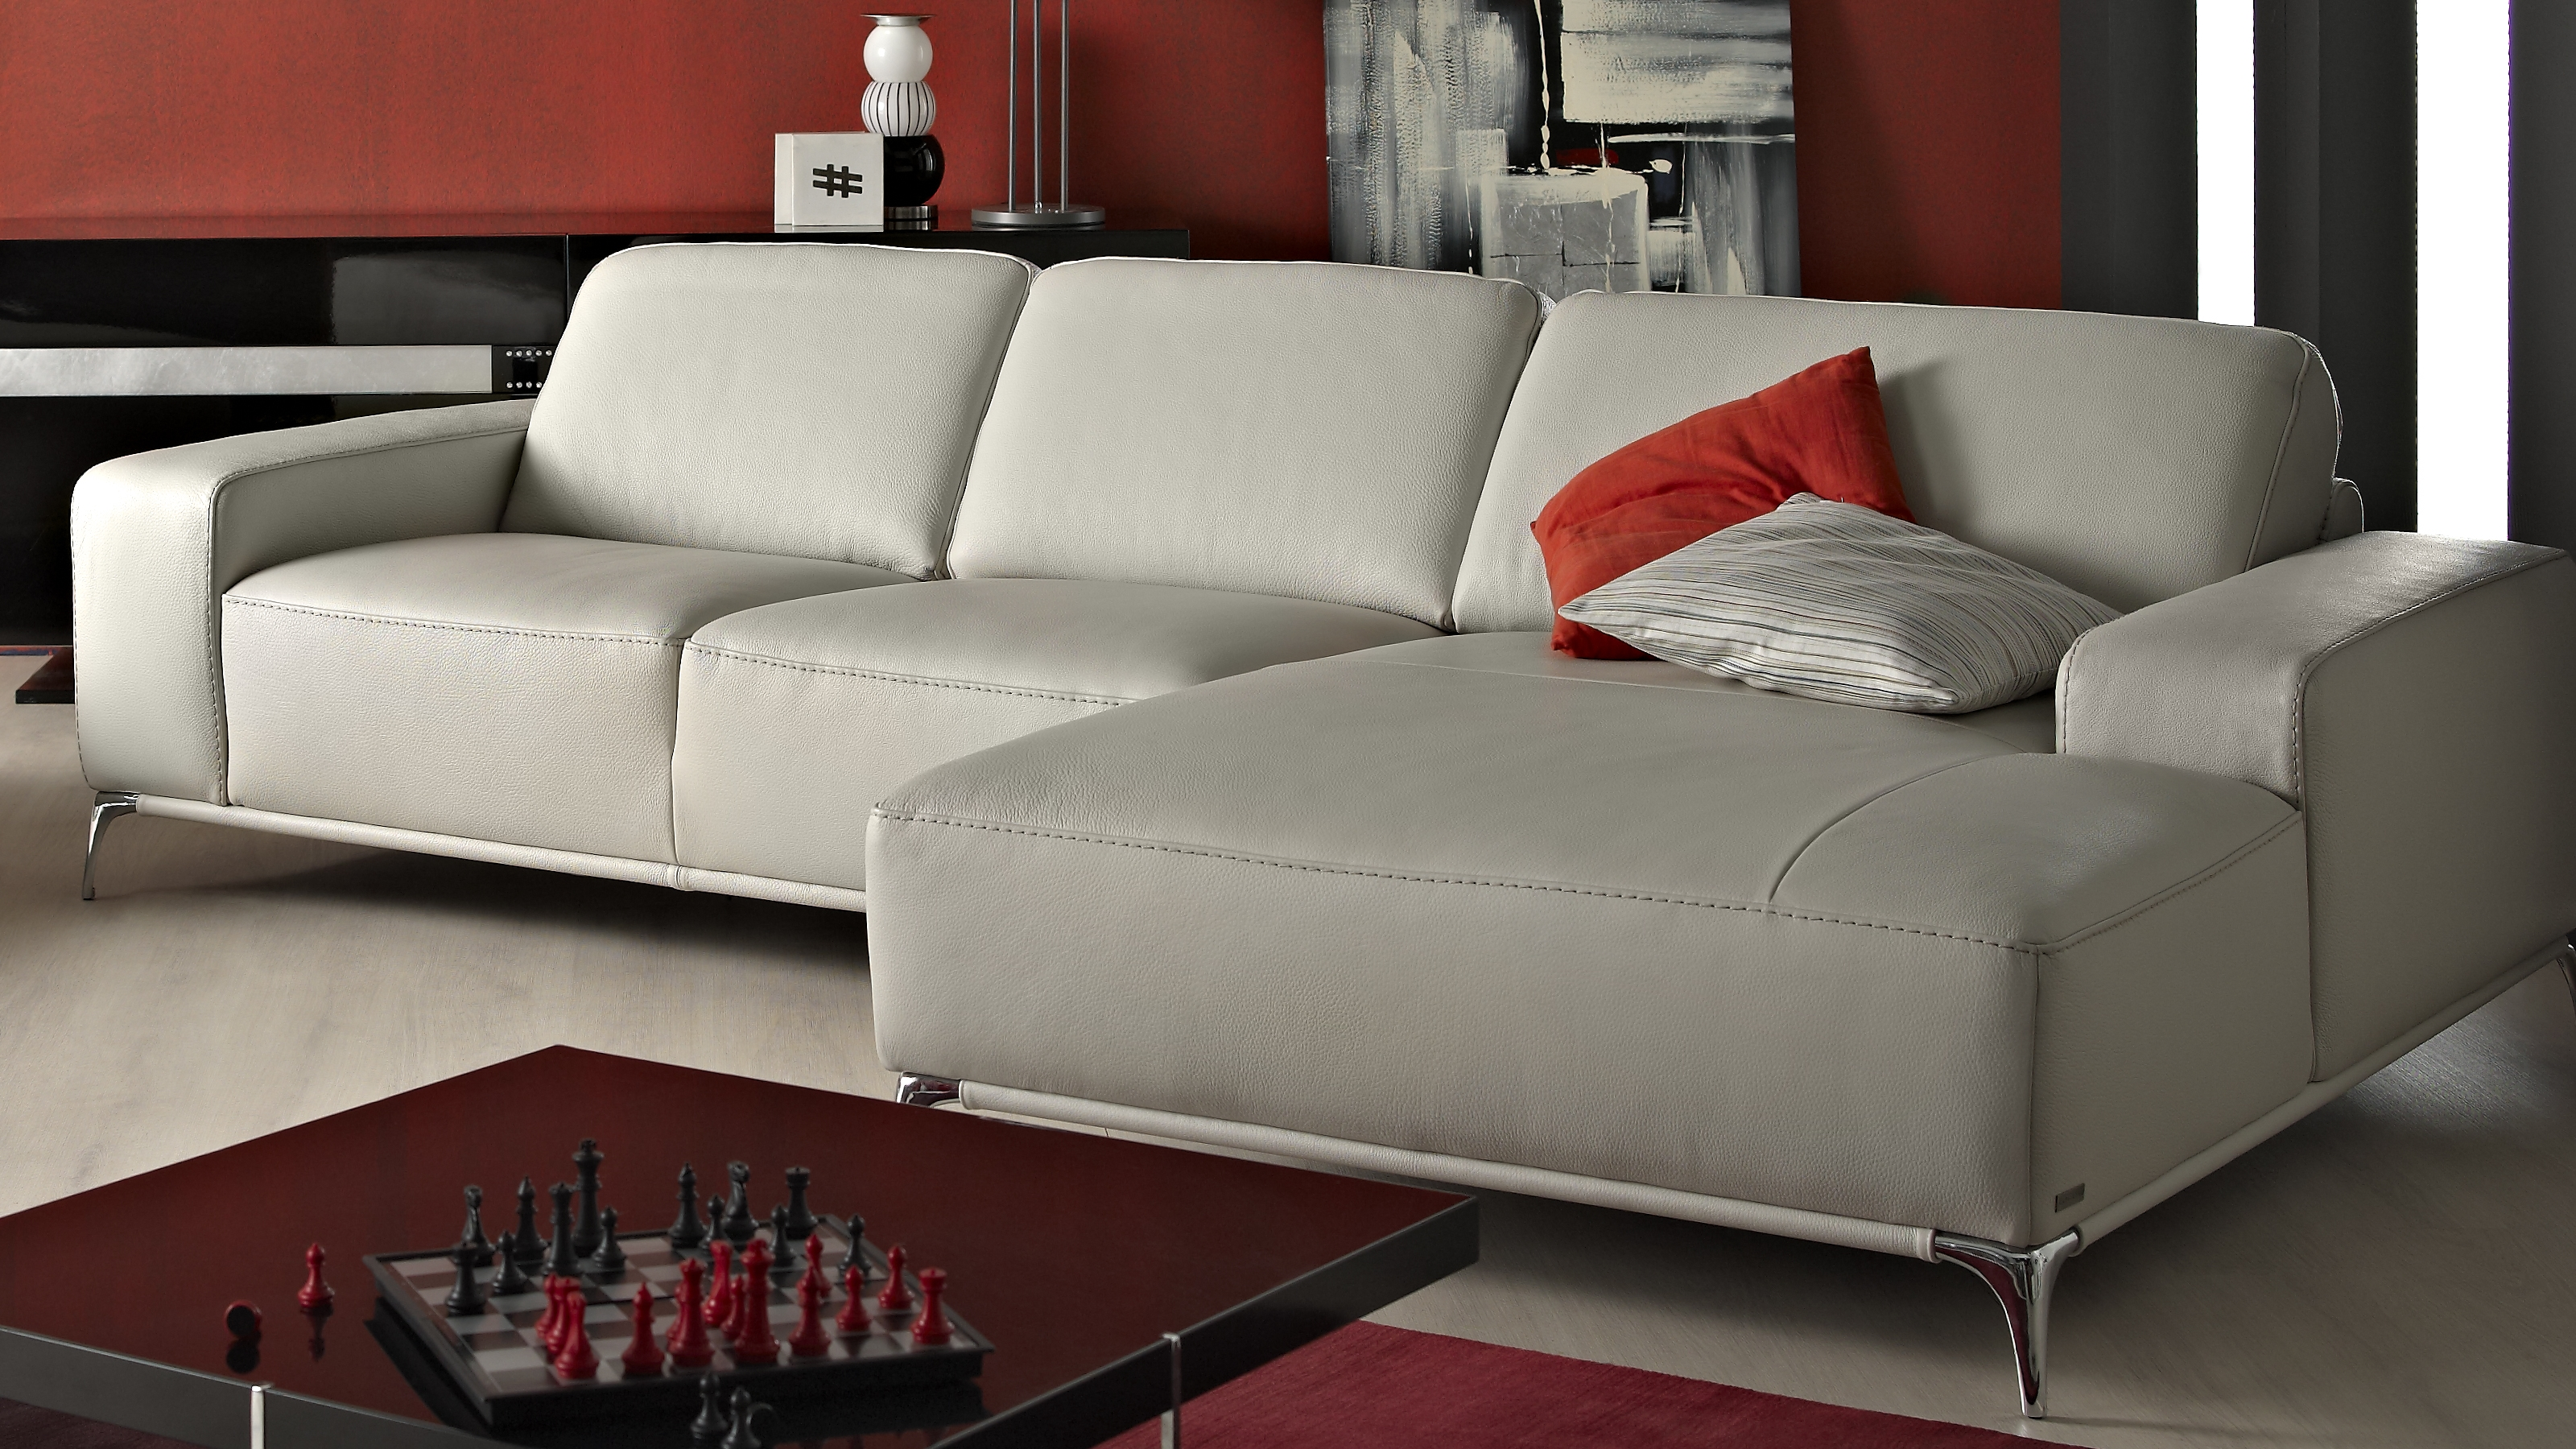 Saporini artemi full leather 2 5 seater sofa with chaise for 1 seater chaise lounge